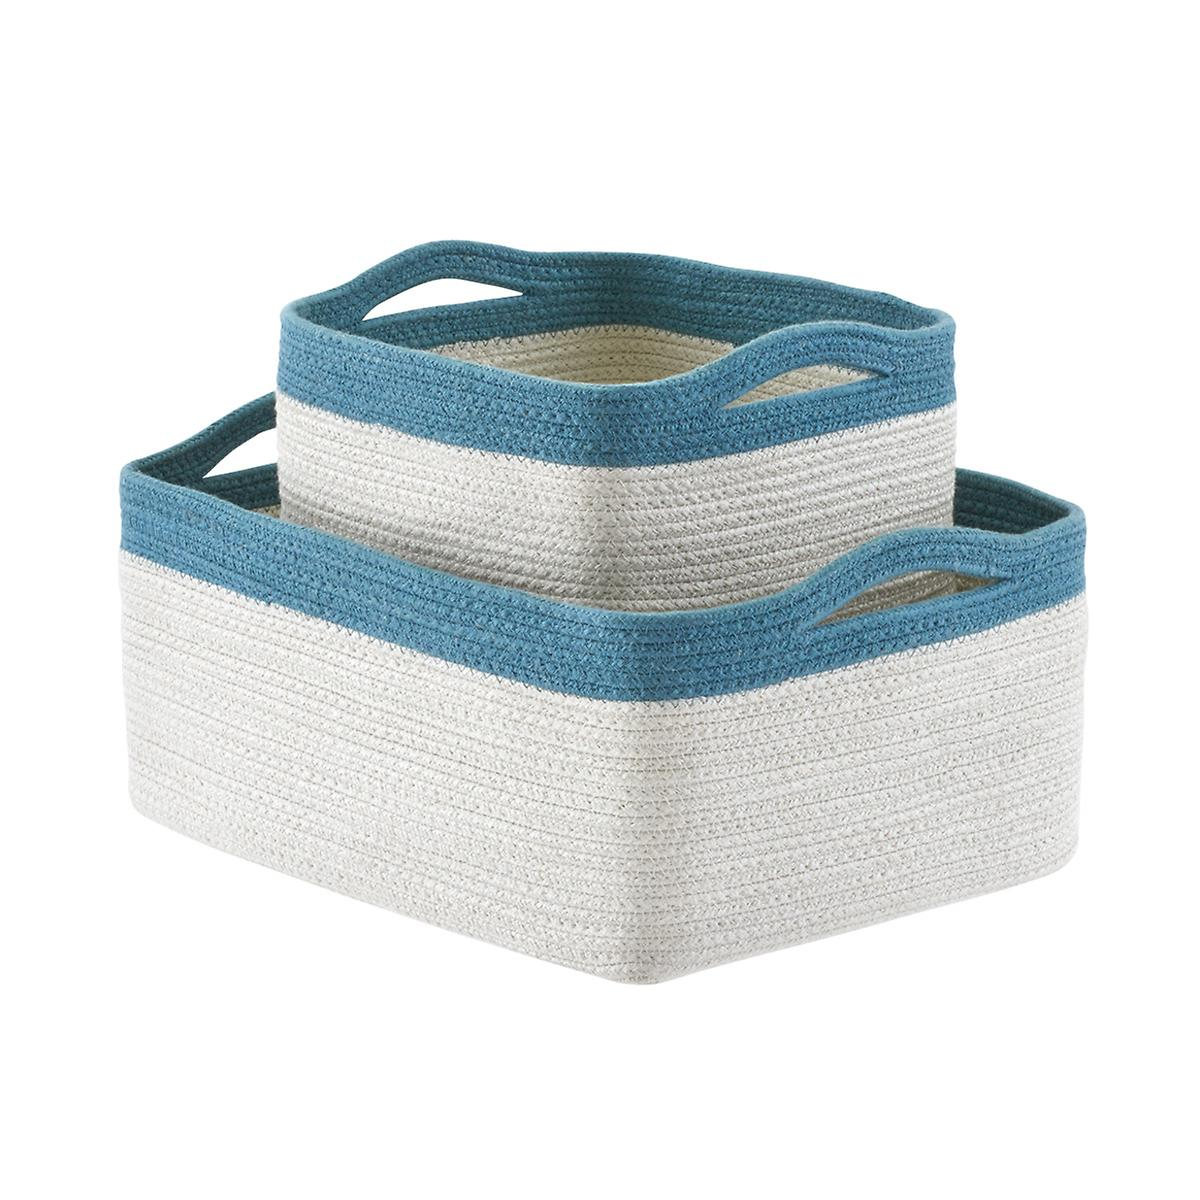 Blue Two-Tone Storage Bins with Handles